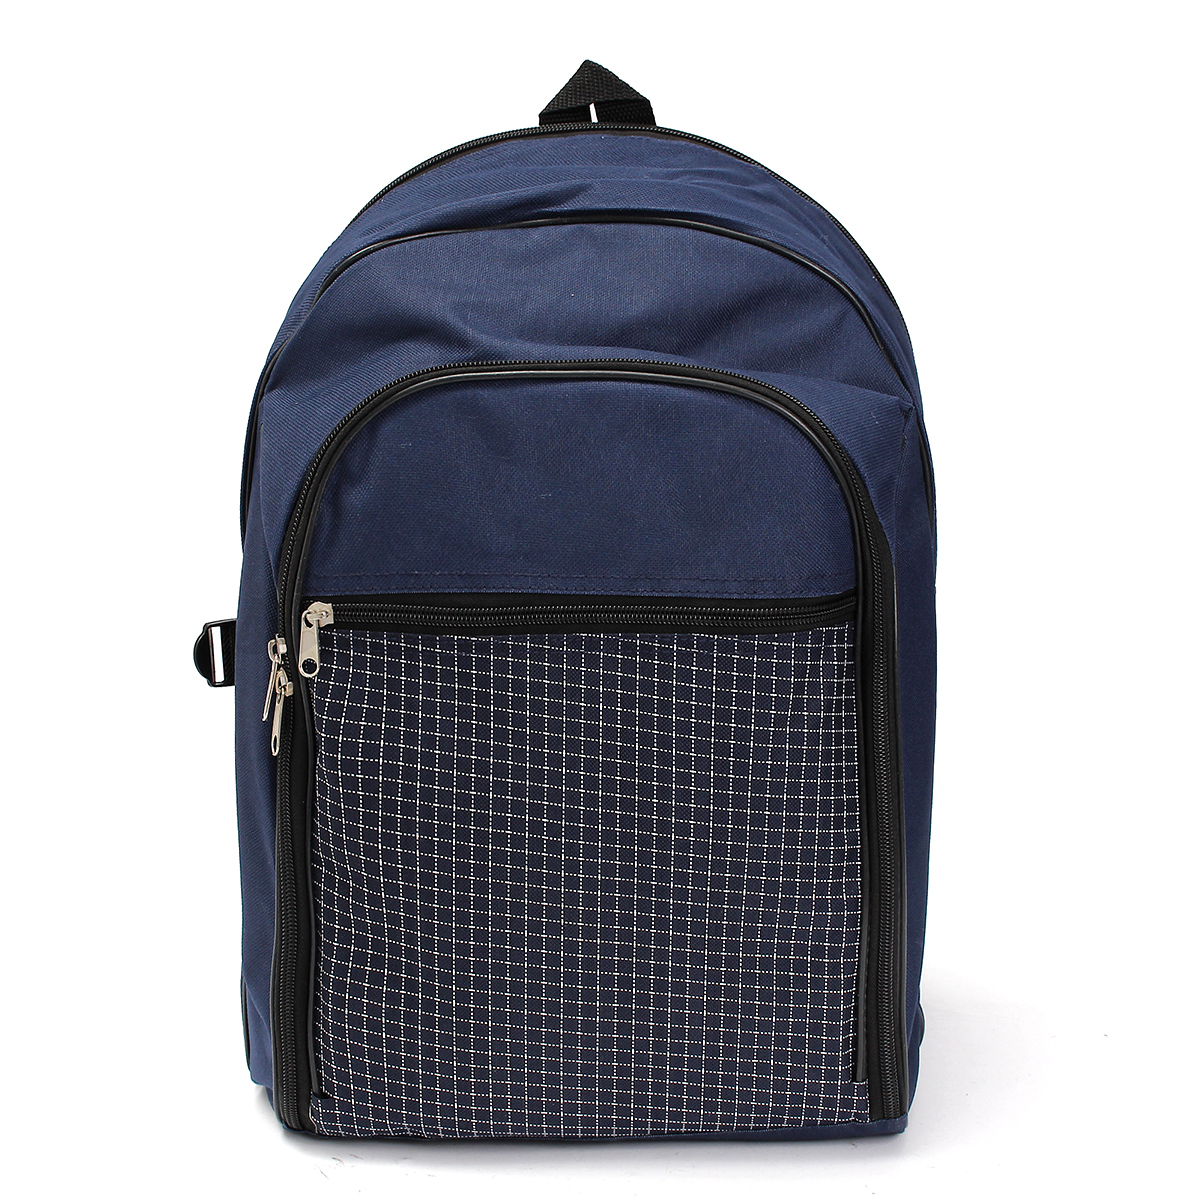 Picnic Basket Backpack Two : Deluxe pc picnic set service for insulated backpack